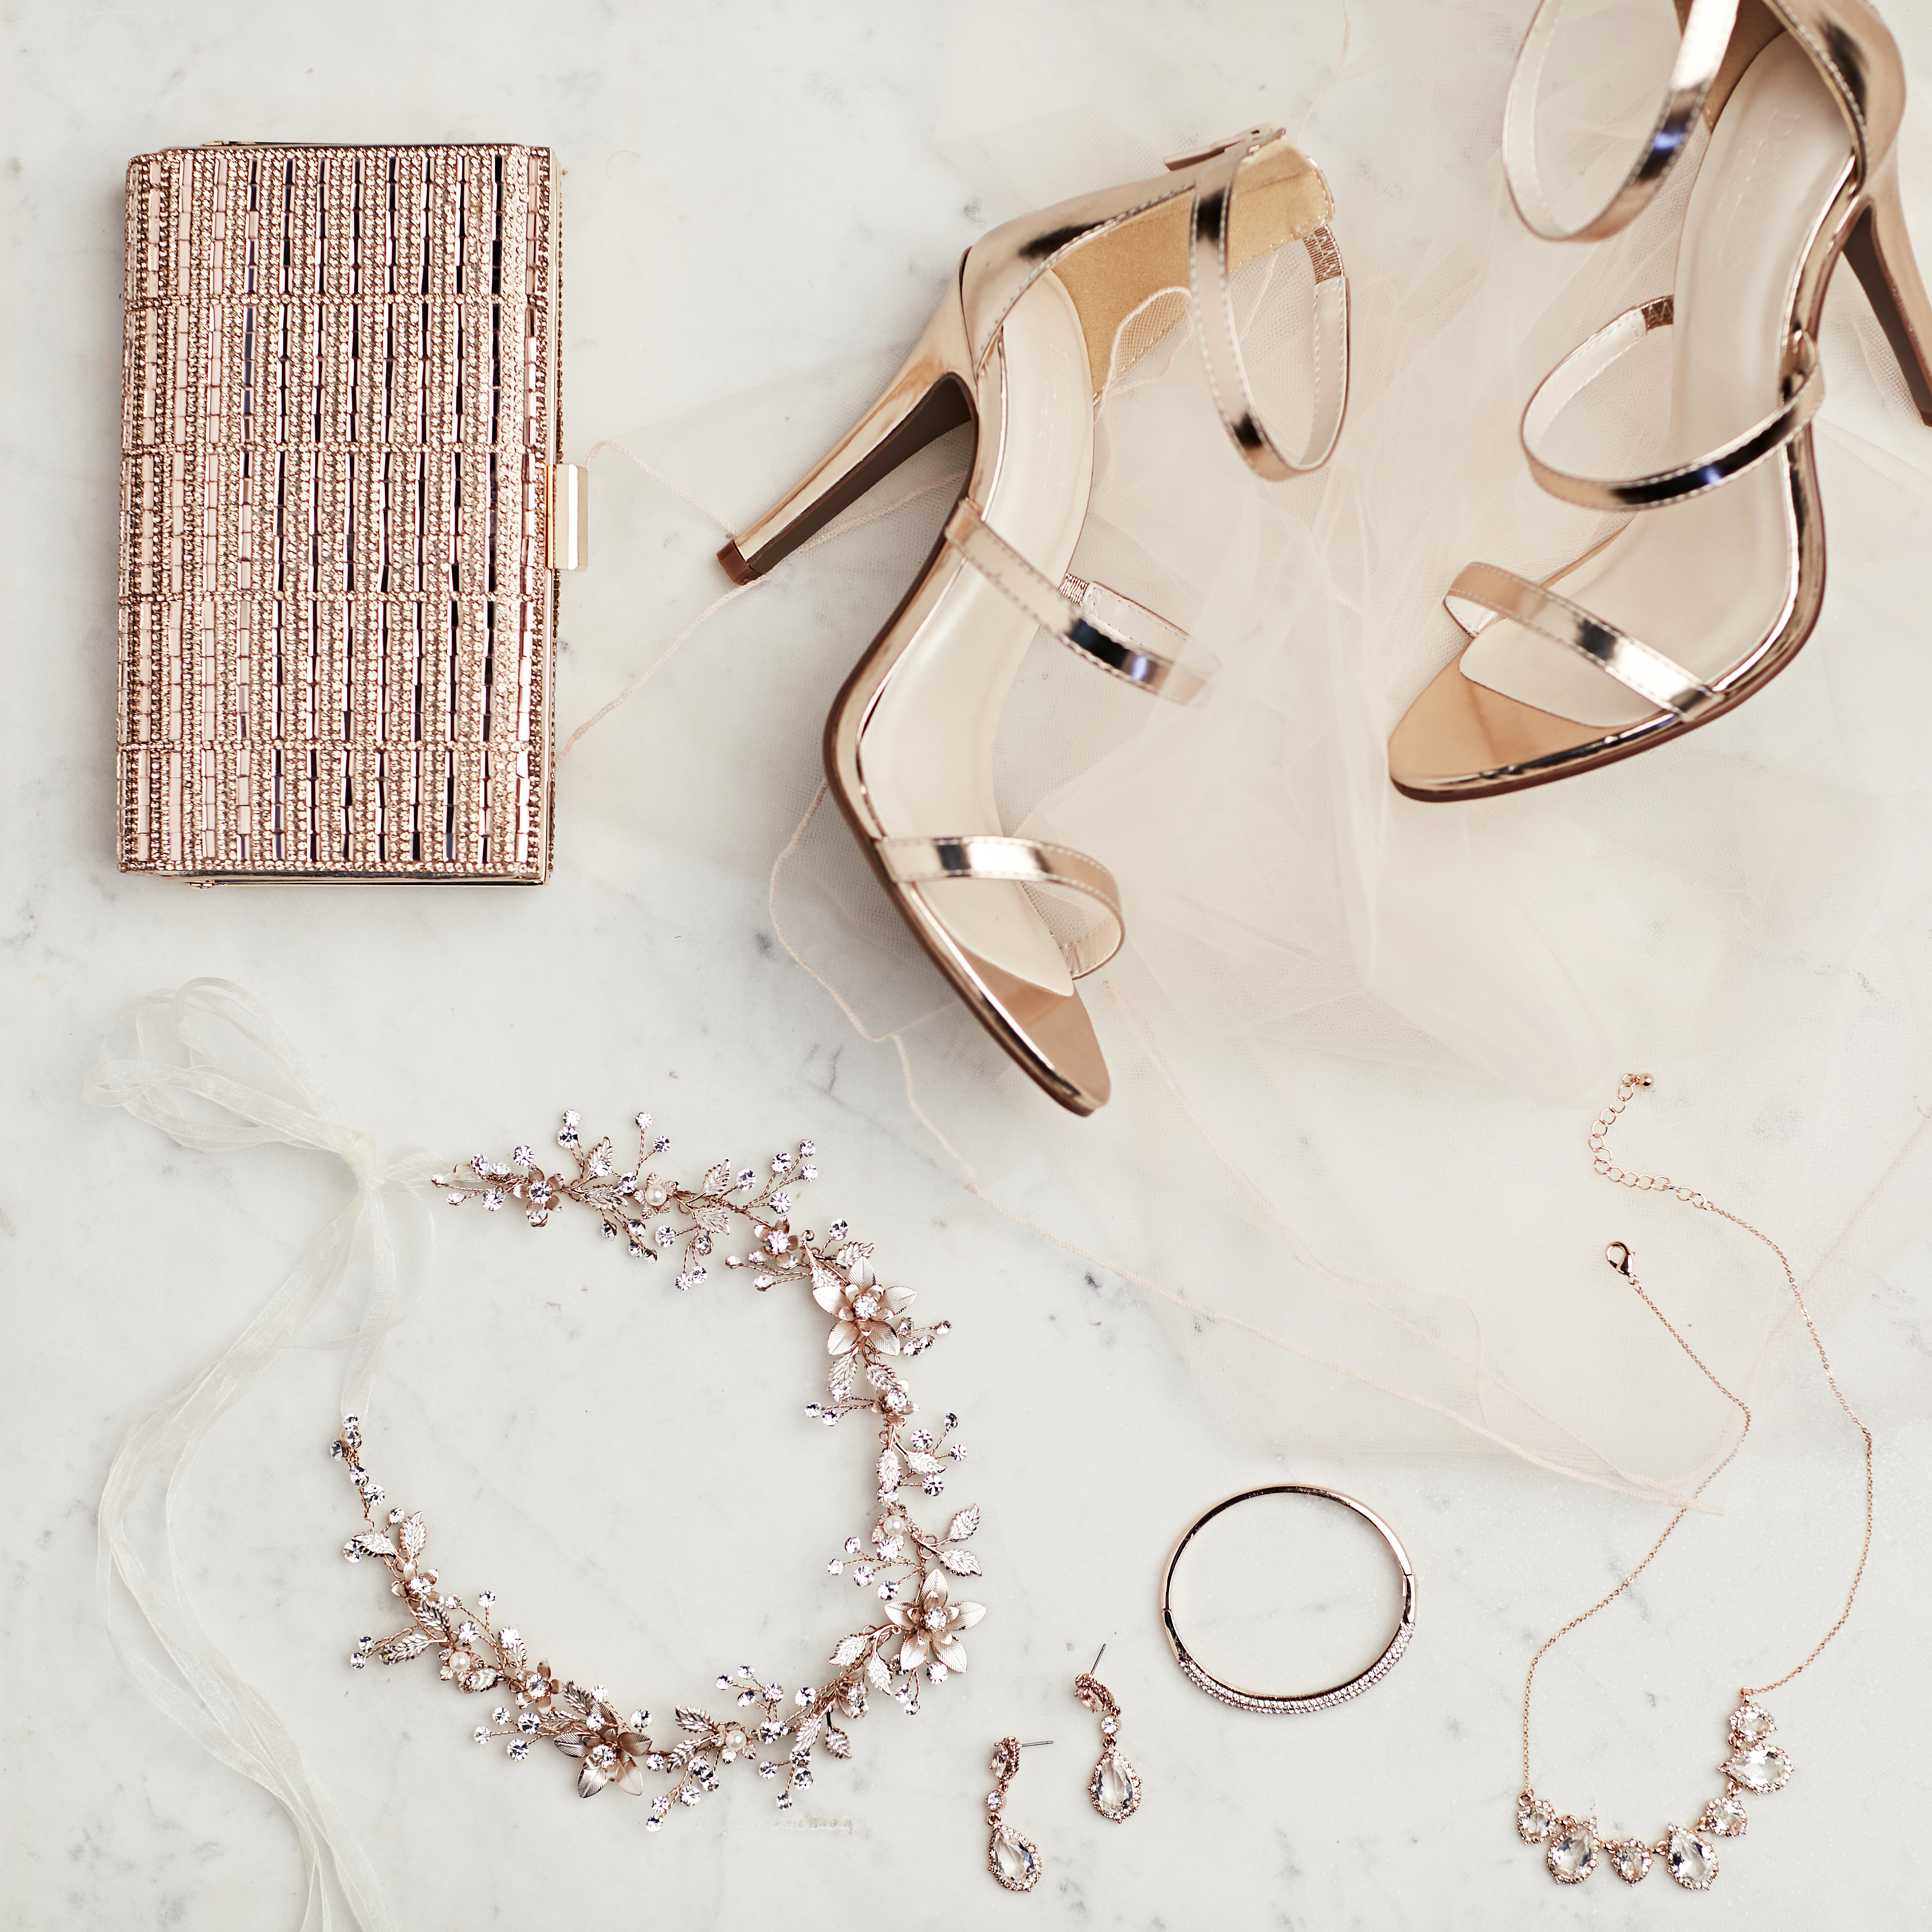 Rose Gold Accessories from David's Bridal